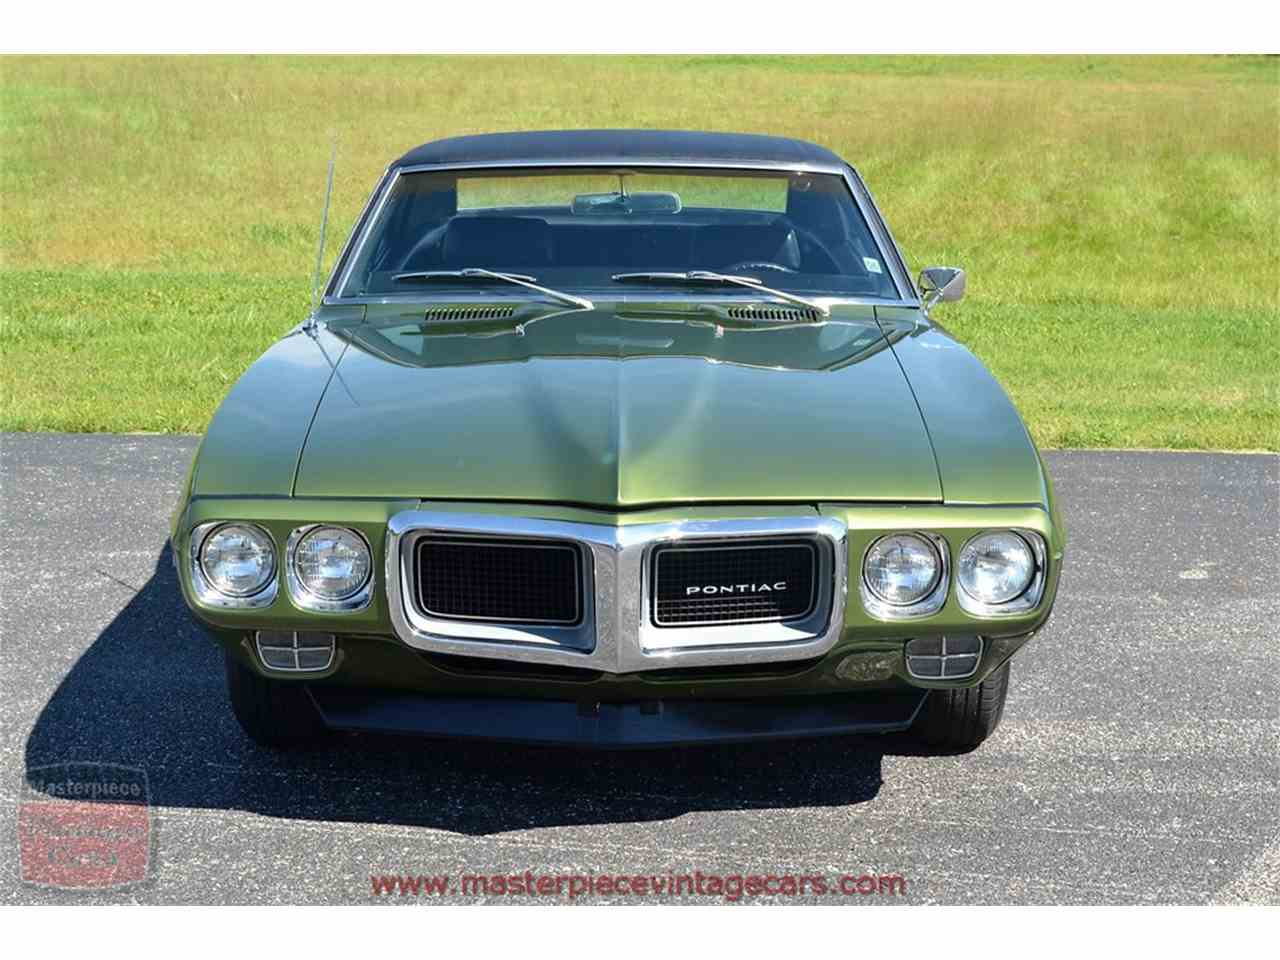 Large Picture of 1969 Pontiac Firebird - $29,900.00 Offered by Masterpiece Vintage Cars - JGIO